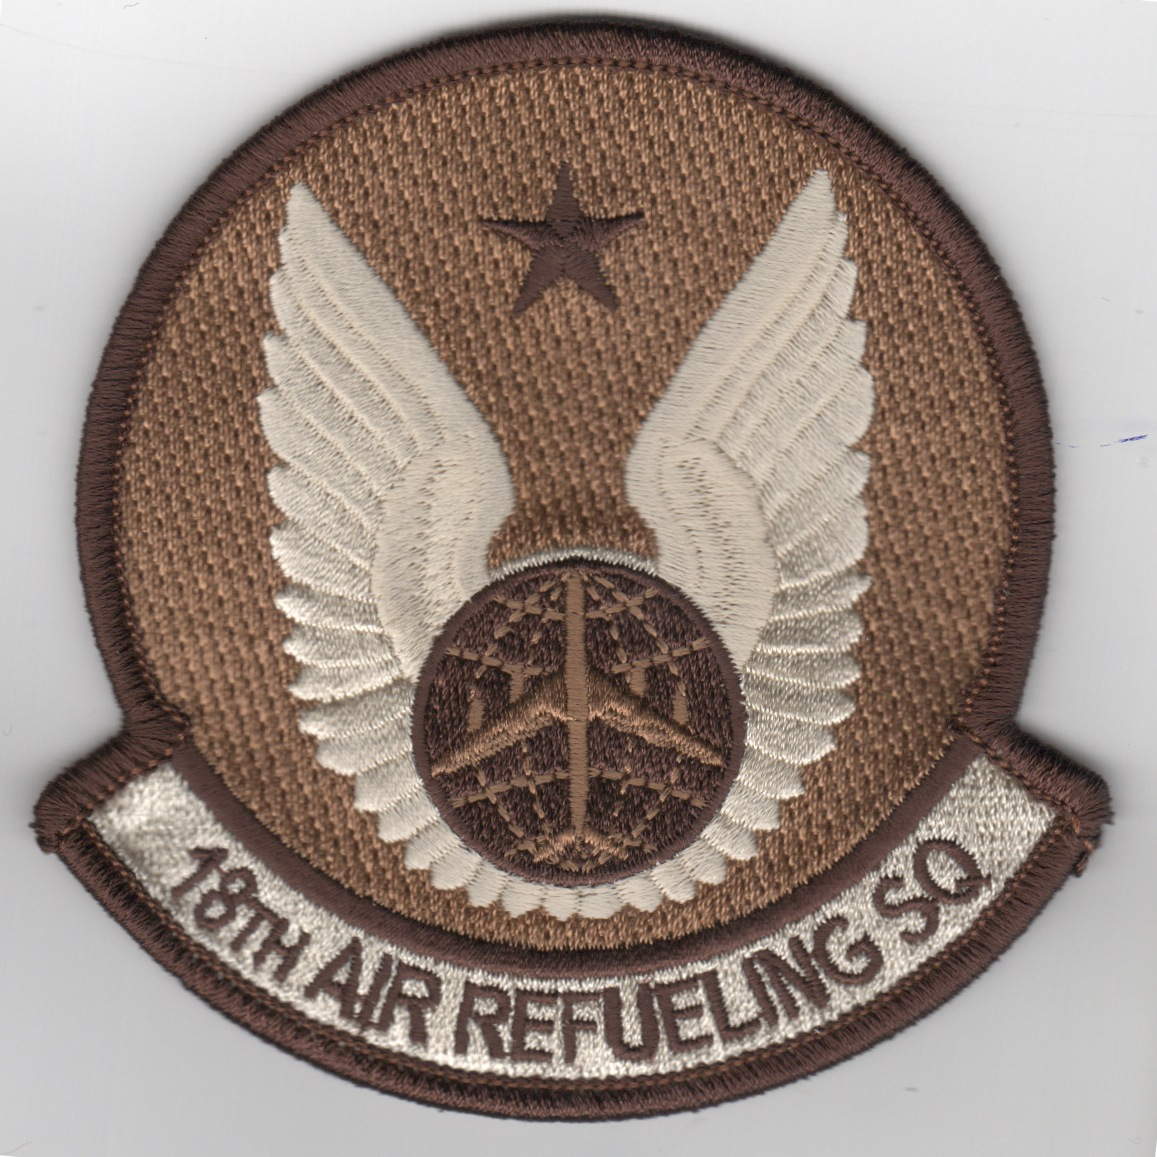 18th Air Refueling Sqdn Patch (Des)